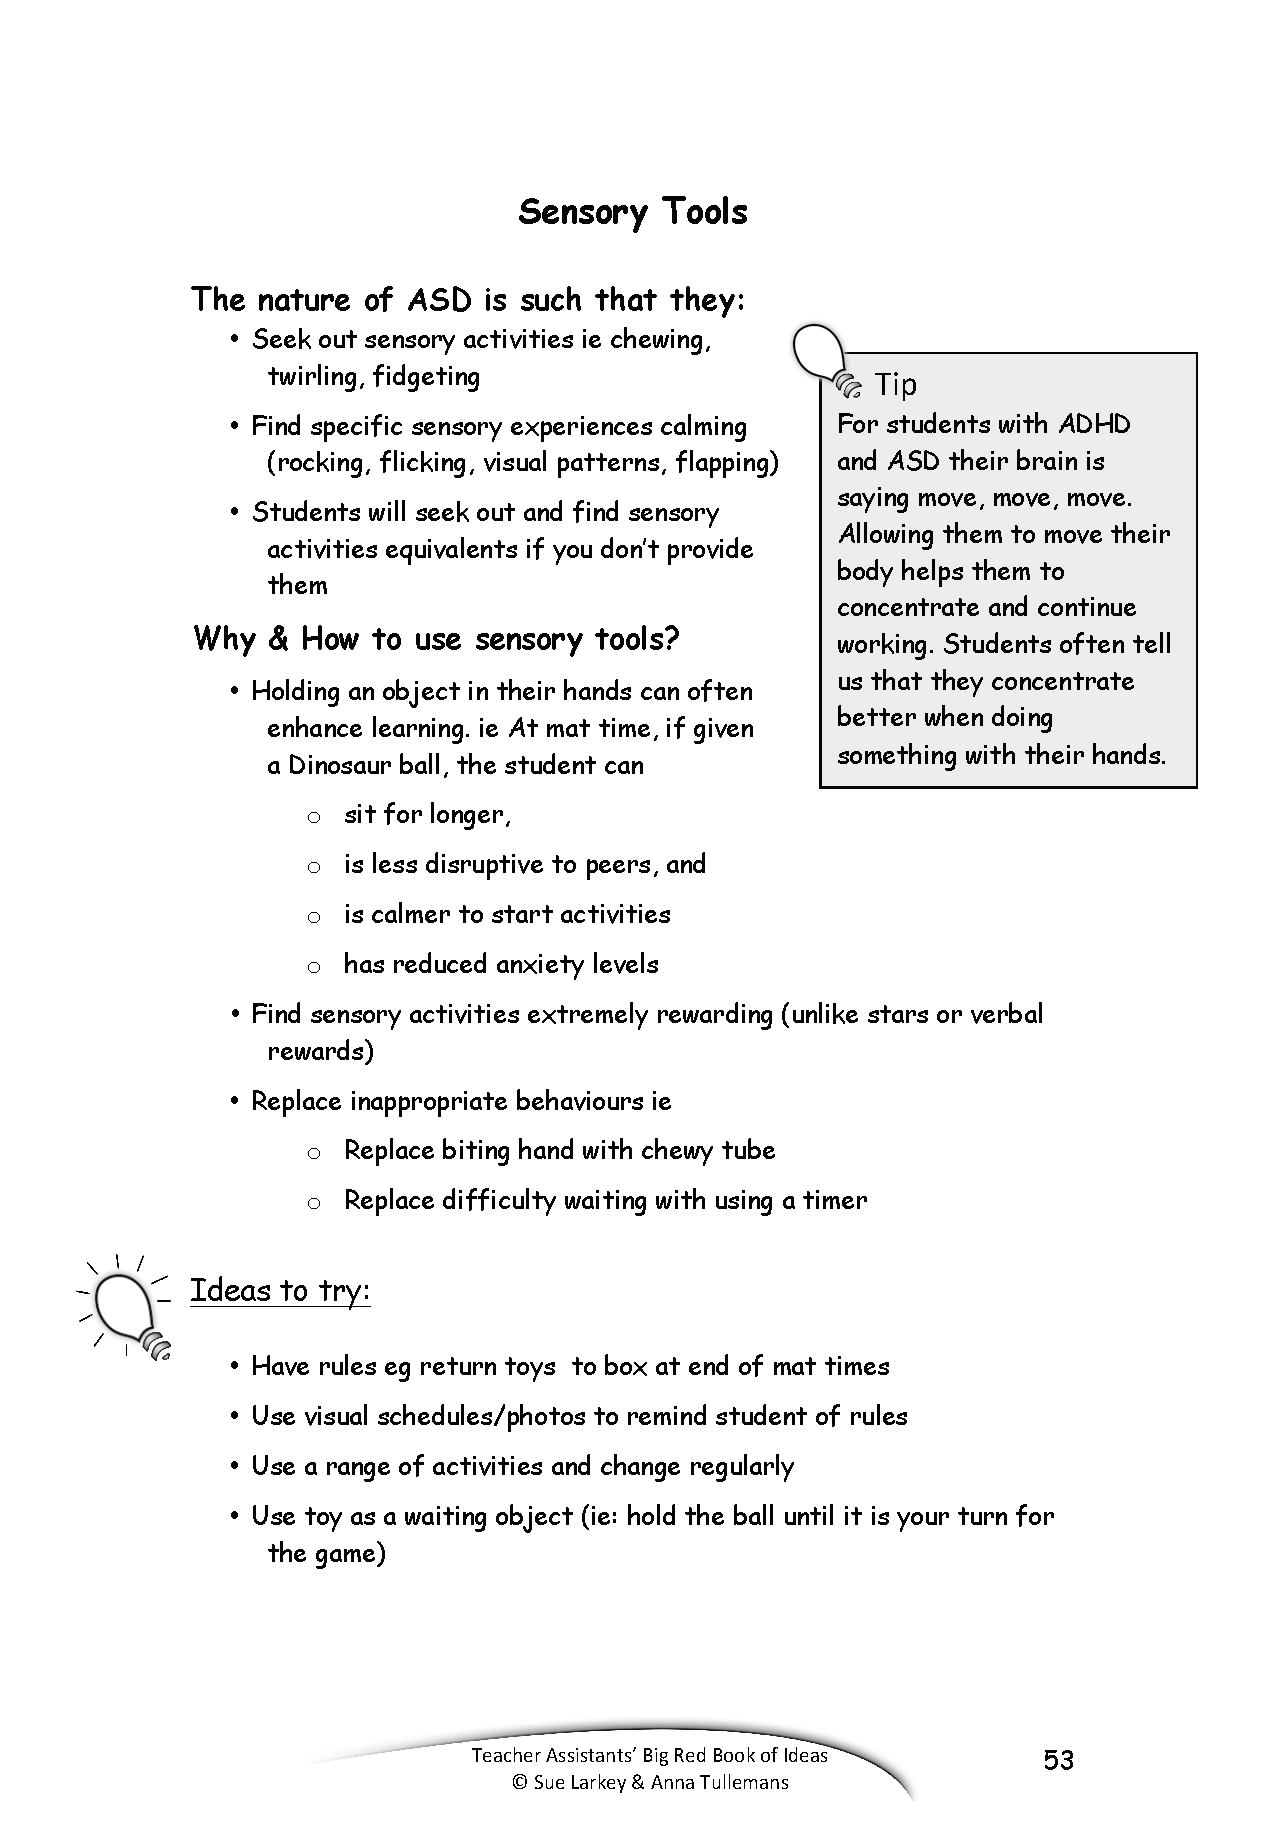 Same Pages from Teacher Assistants Big Red Book of Ideas_Page_6